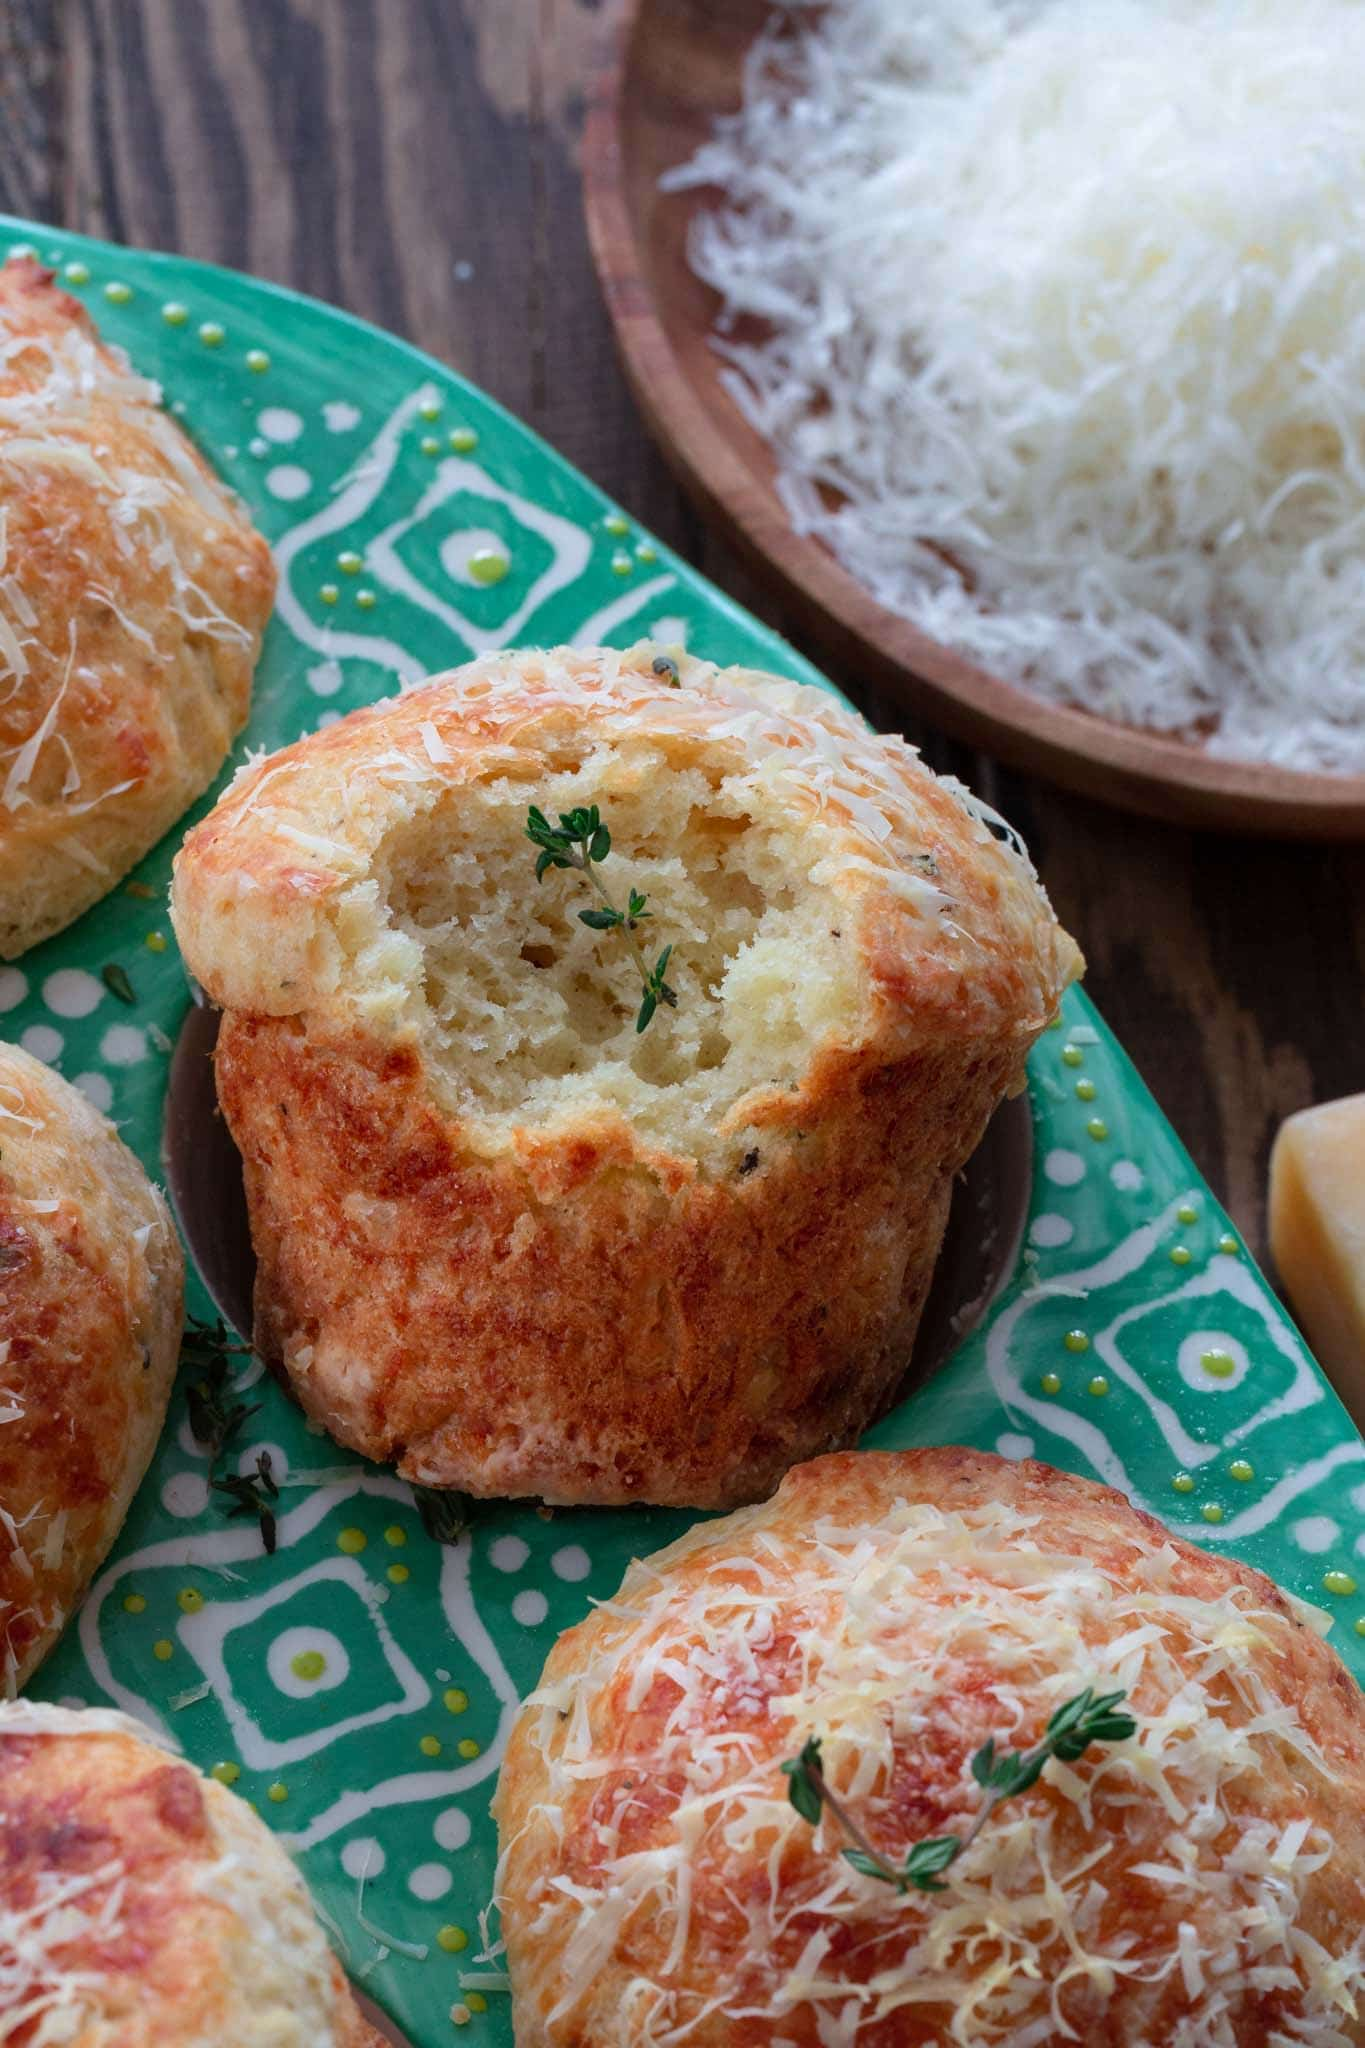 A close up of the inside of a parmesan cheese muffin